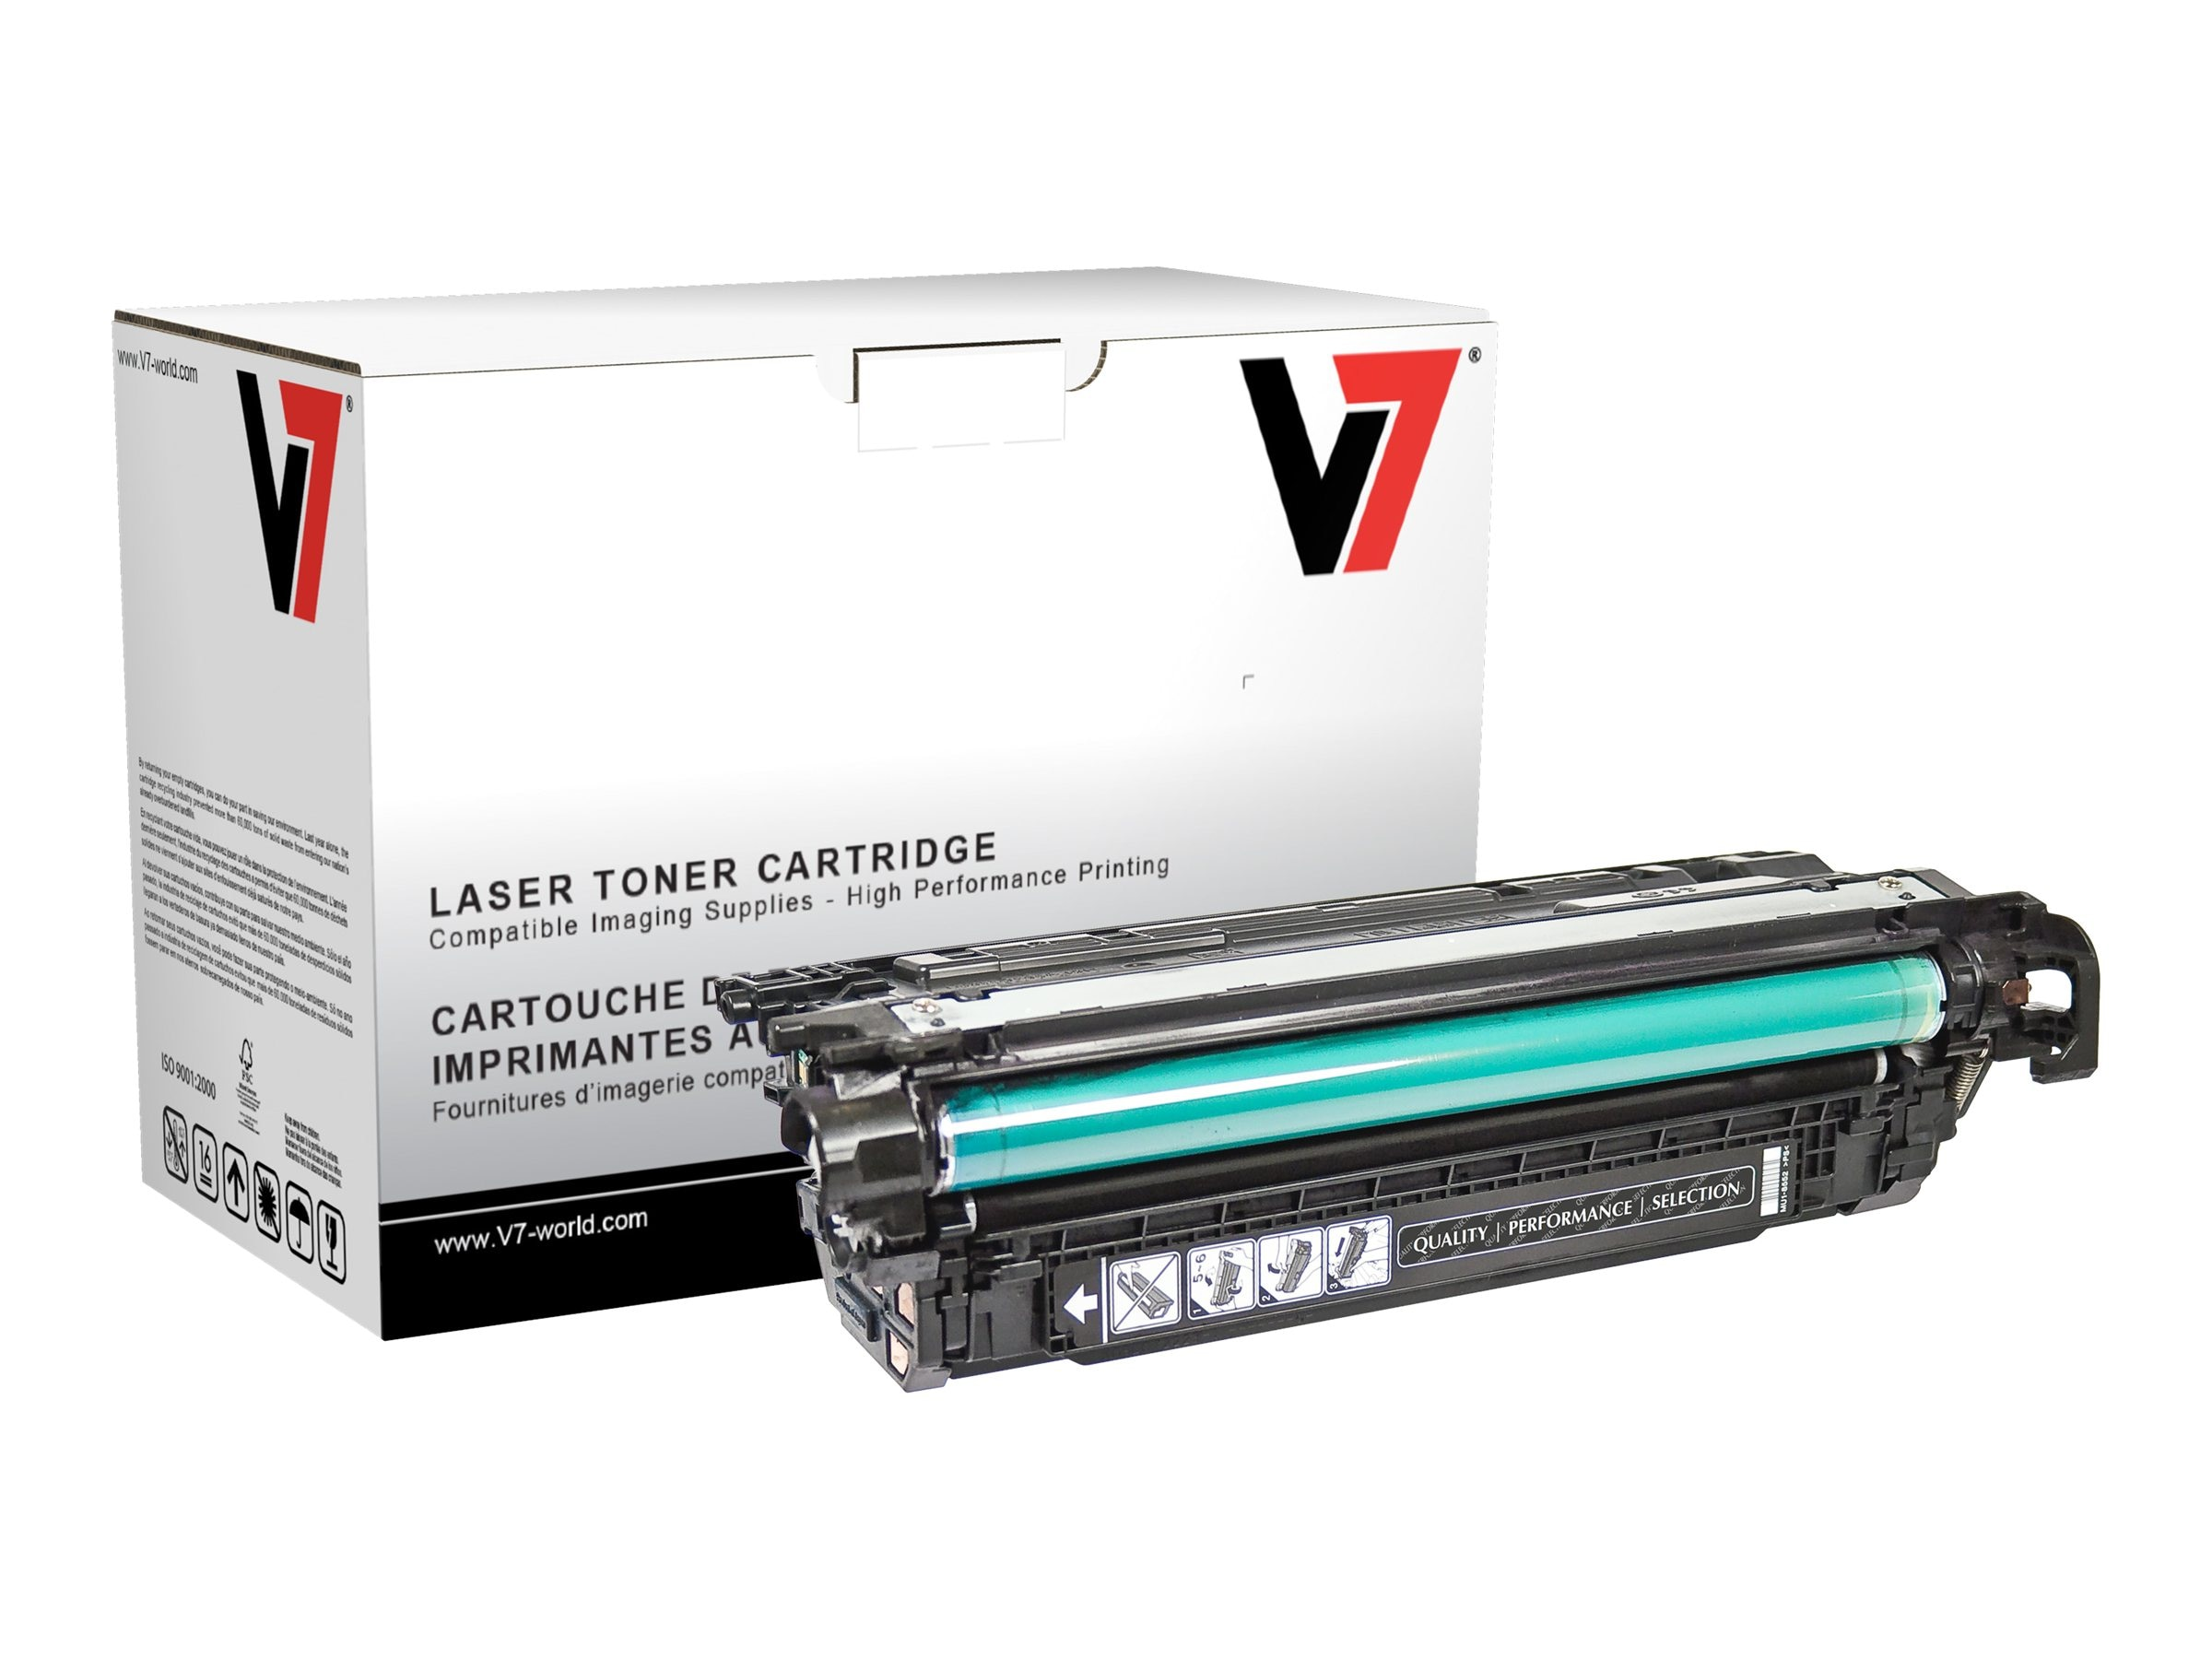 V7 CE260A Black Toner Cartridge for HP LaserJet P4025 4525 (TAA Compliant), THK2260A, 13732008, Toner and Imaging Components